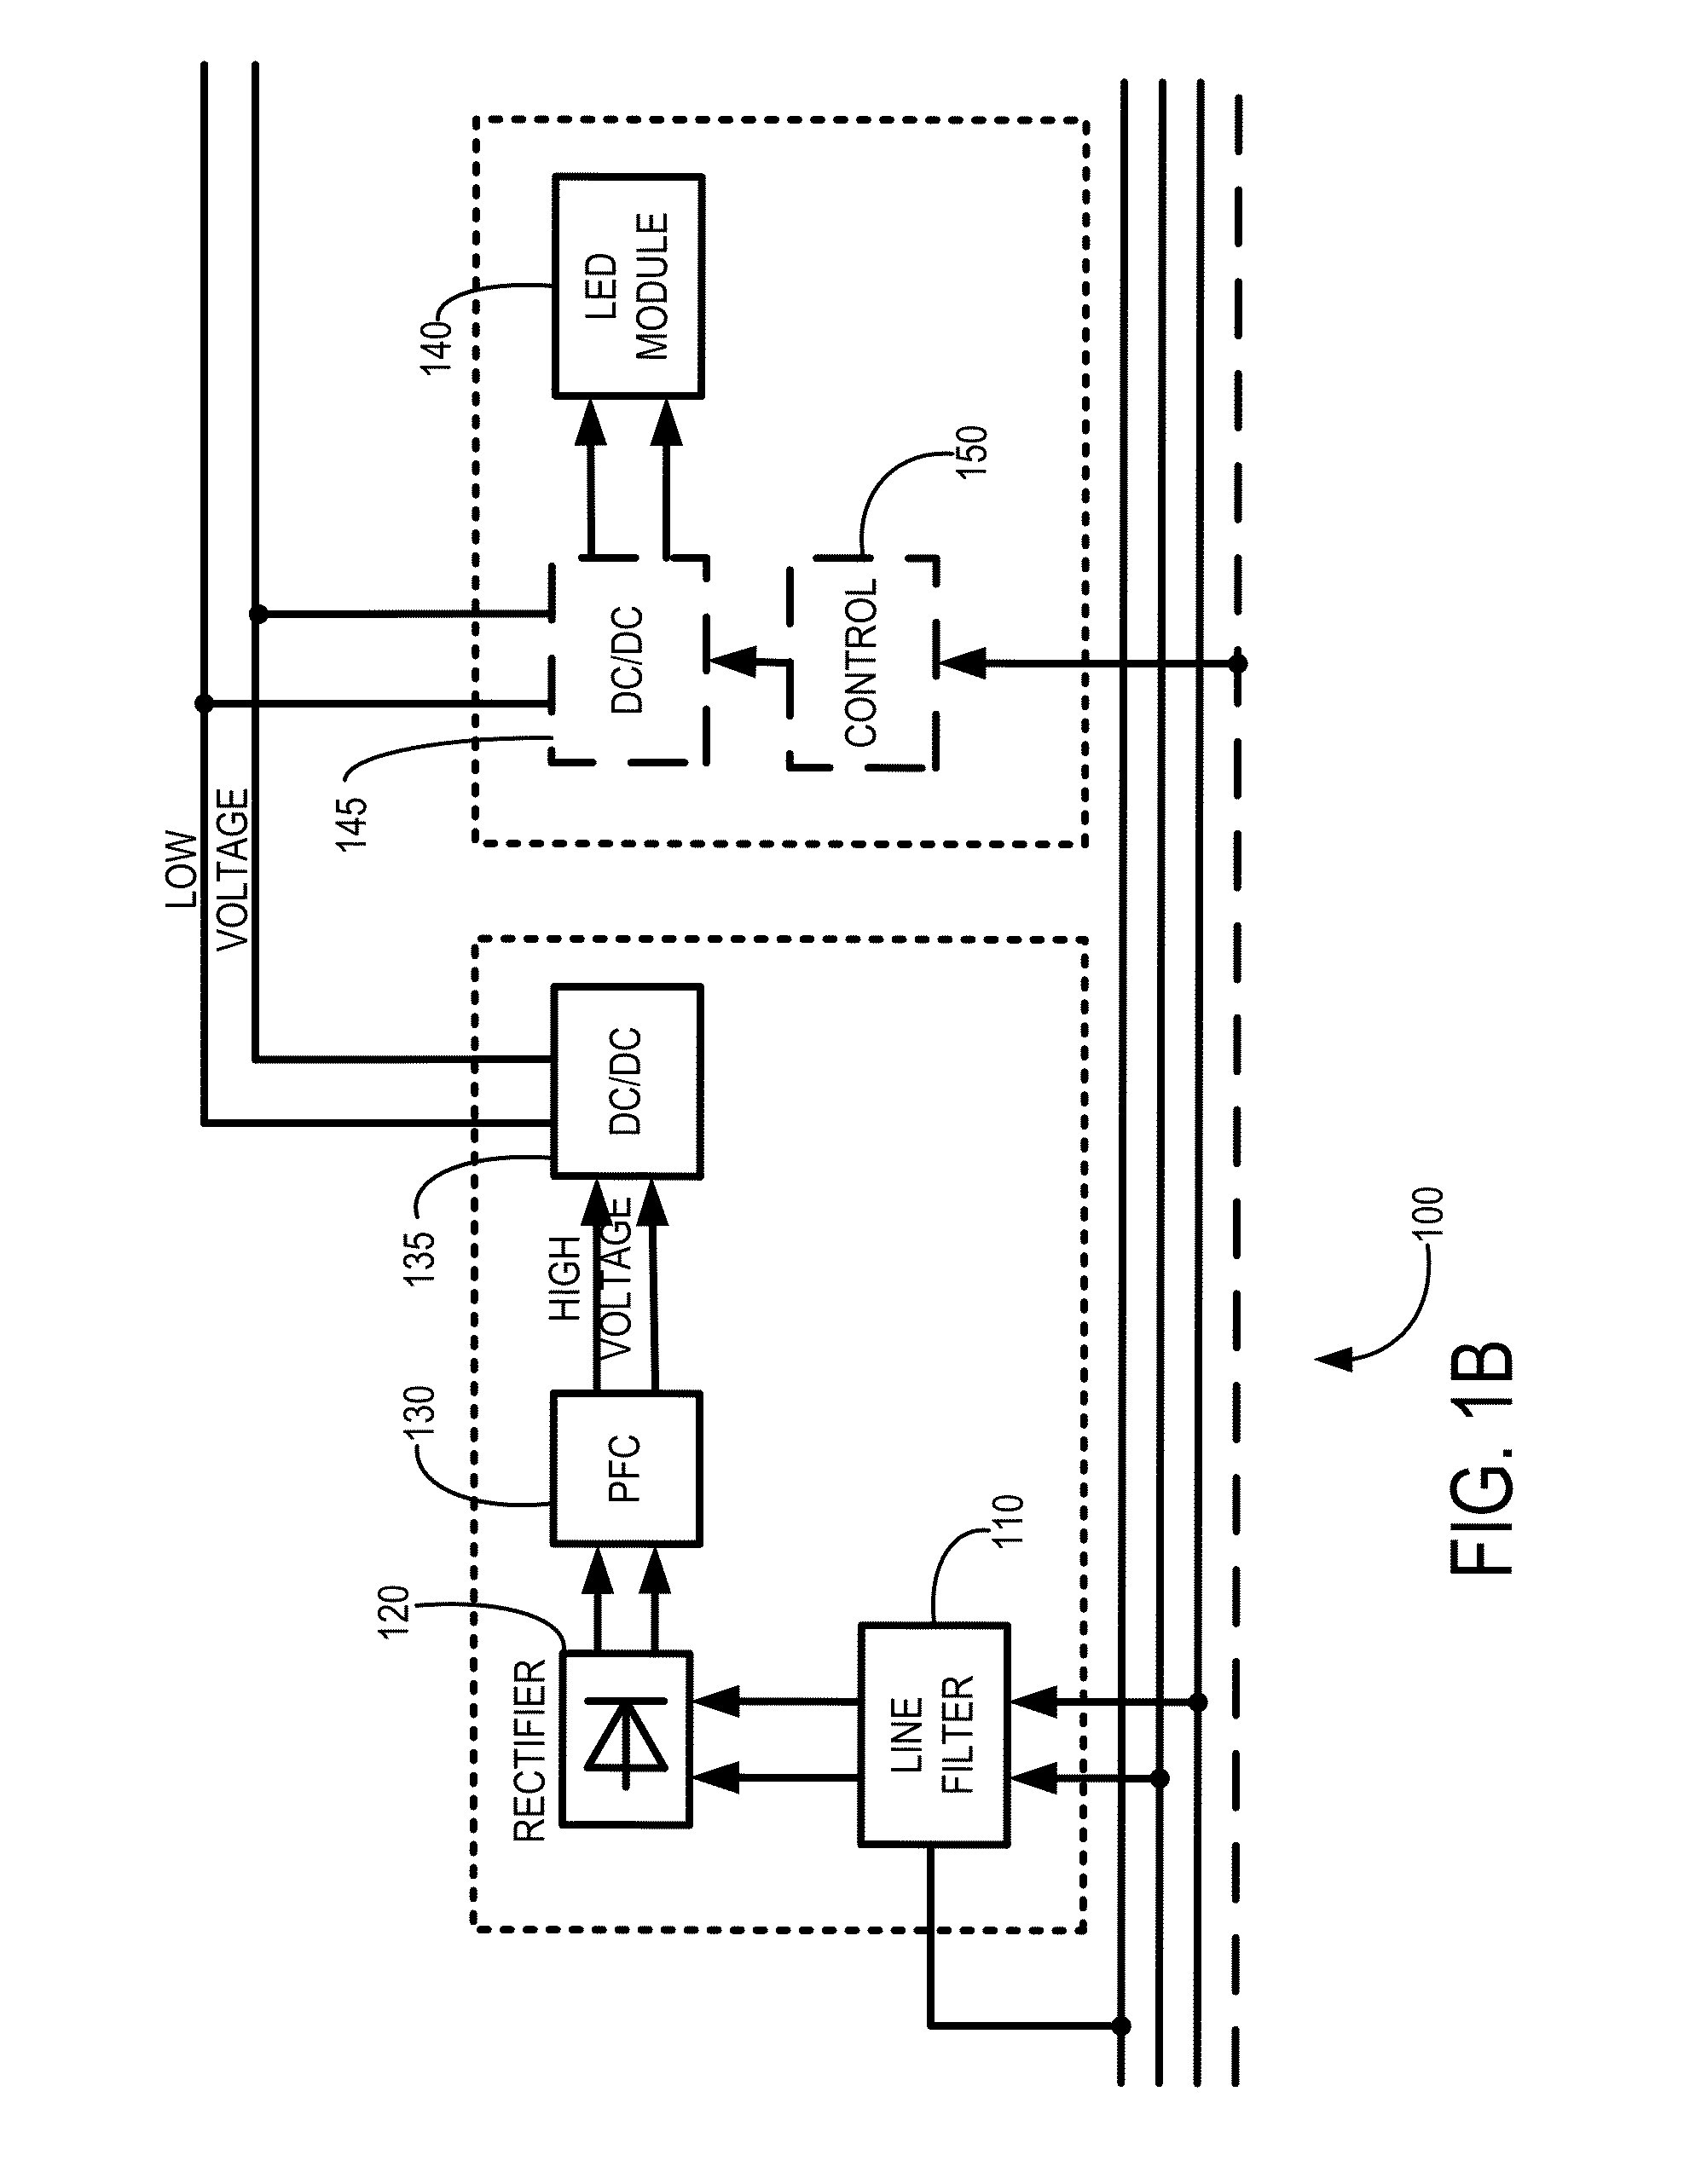 US20140103804A1 20140417 D00002 patent us20140103804 power distribution system and method for gva-24 wiring diagram at reclaimingppi.co